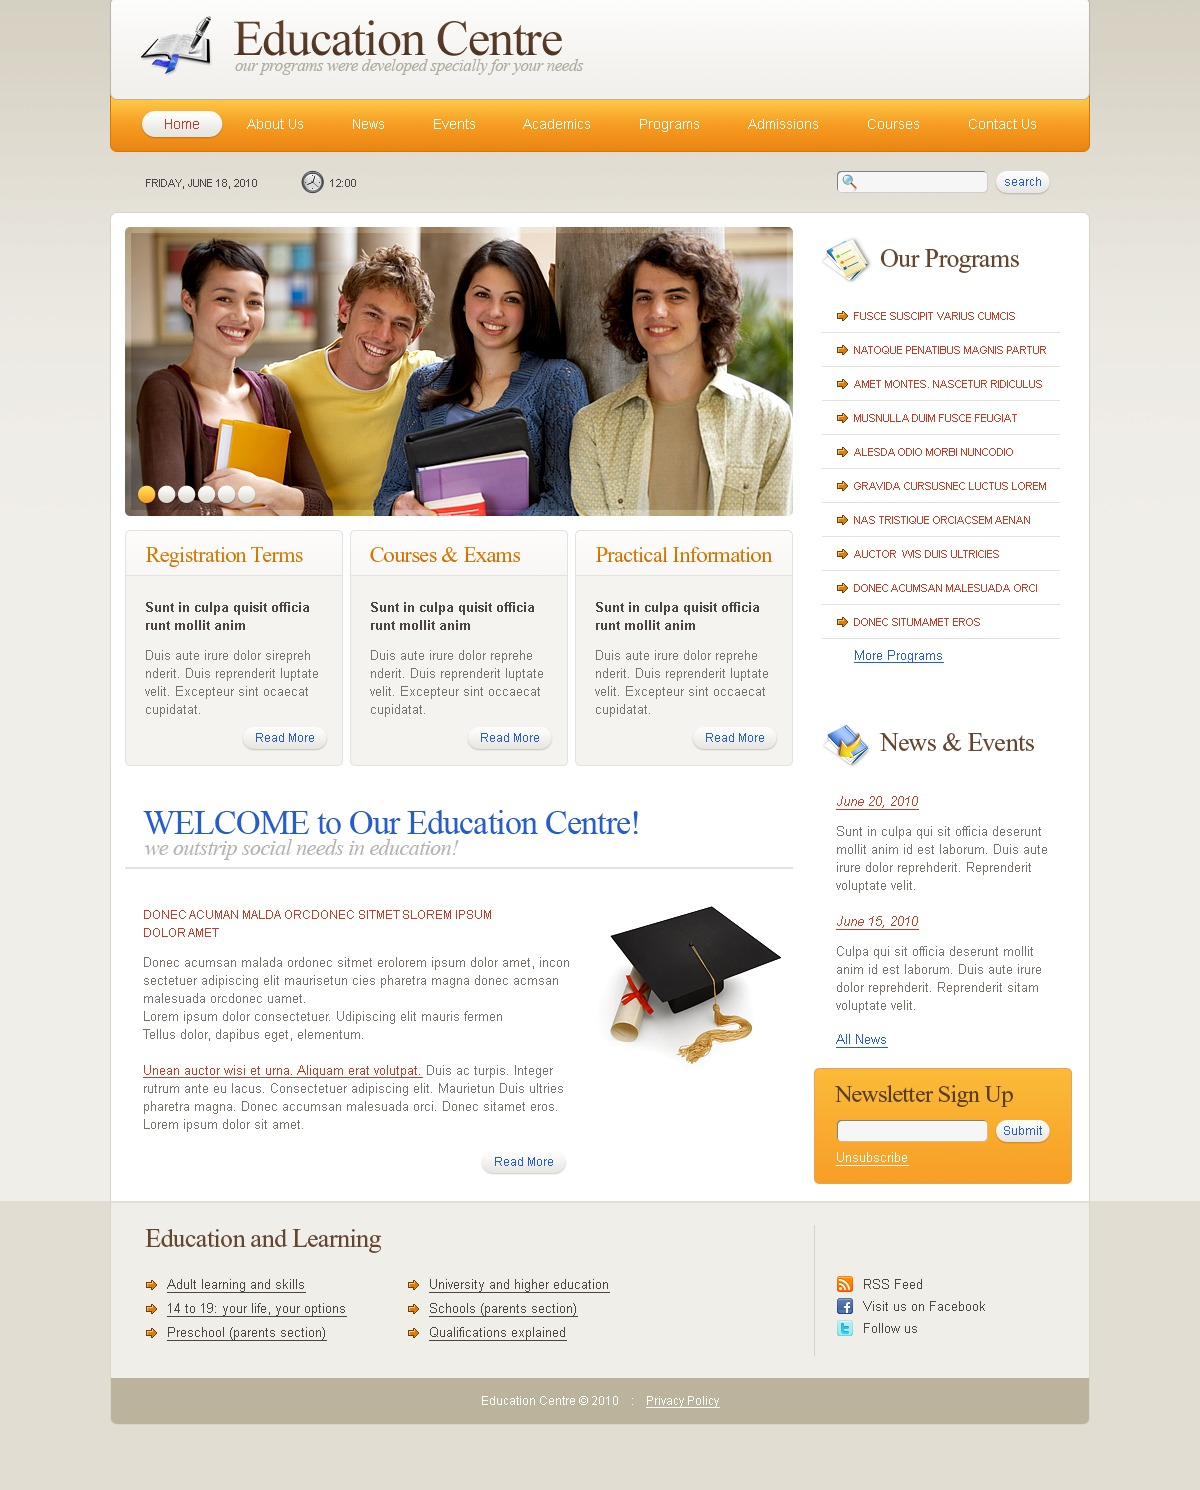 The Education Center PSD Design 54144, one of the best PSD templates of its kind (education, flash 8, wide), also known as education center PSD template, college PSD template, science PSD template, admission PSD template, faculty PSD template, department PSD template, class PSD template, alumni PSD template, student PSD template, professor PSD template, enrolment PSD template, union PSD template, library PSD template, auditorium PSD template, graduate PSD template, direction PSD template, tests PSD template, entrance PSD template, examination PSD template, exam PSD template, sport PSD template, community PSD template, party PSD template, administration PSD template, rector PSD template, head PSD template, dean PSD template, college and related with education center, college, science, admission, faculty, department, class, alumni, student, professor, enrolment, union, library, auditorium, graduate, direction, tests, entrance, examination, exam, sport, community, party, administration, rector, head, dean, college, etc.